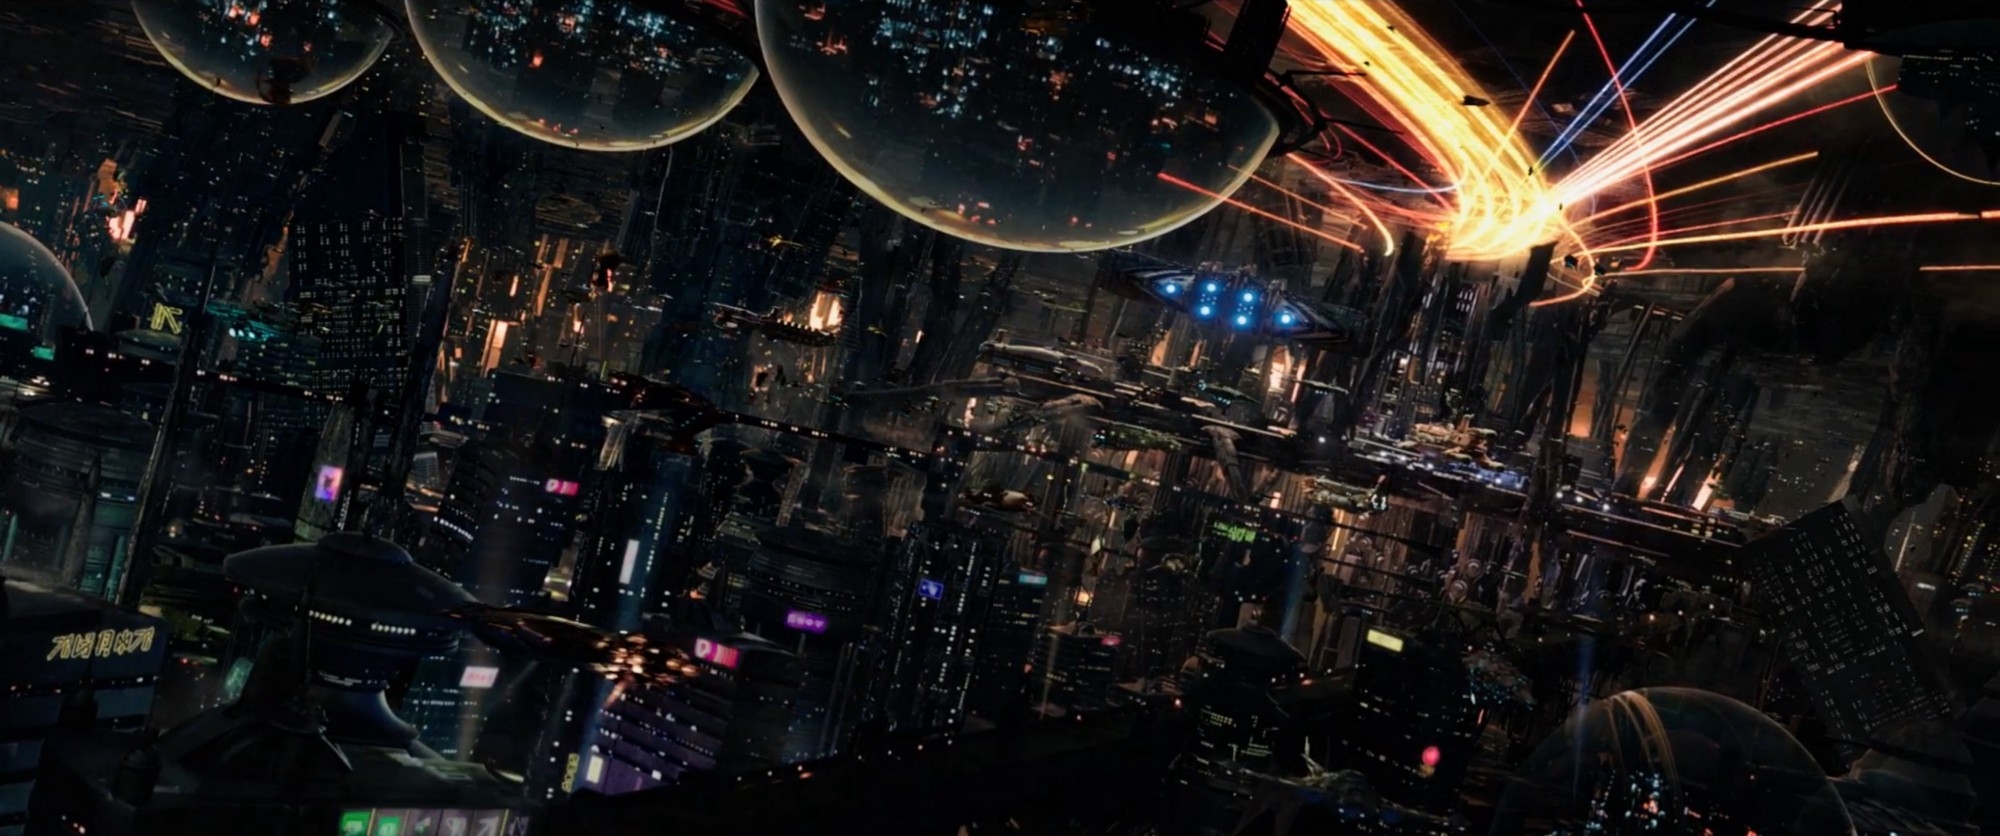 paintings planets and cities - photo #28